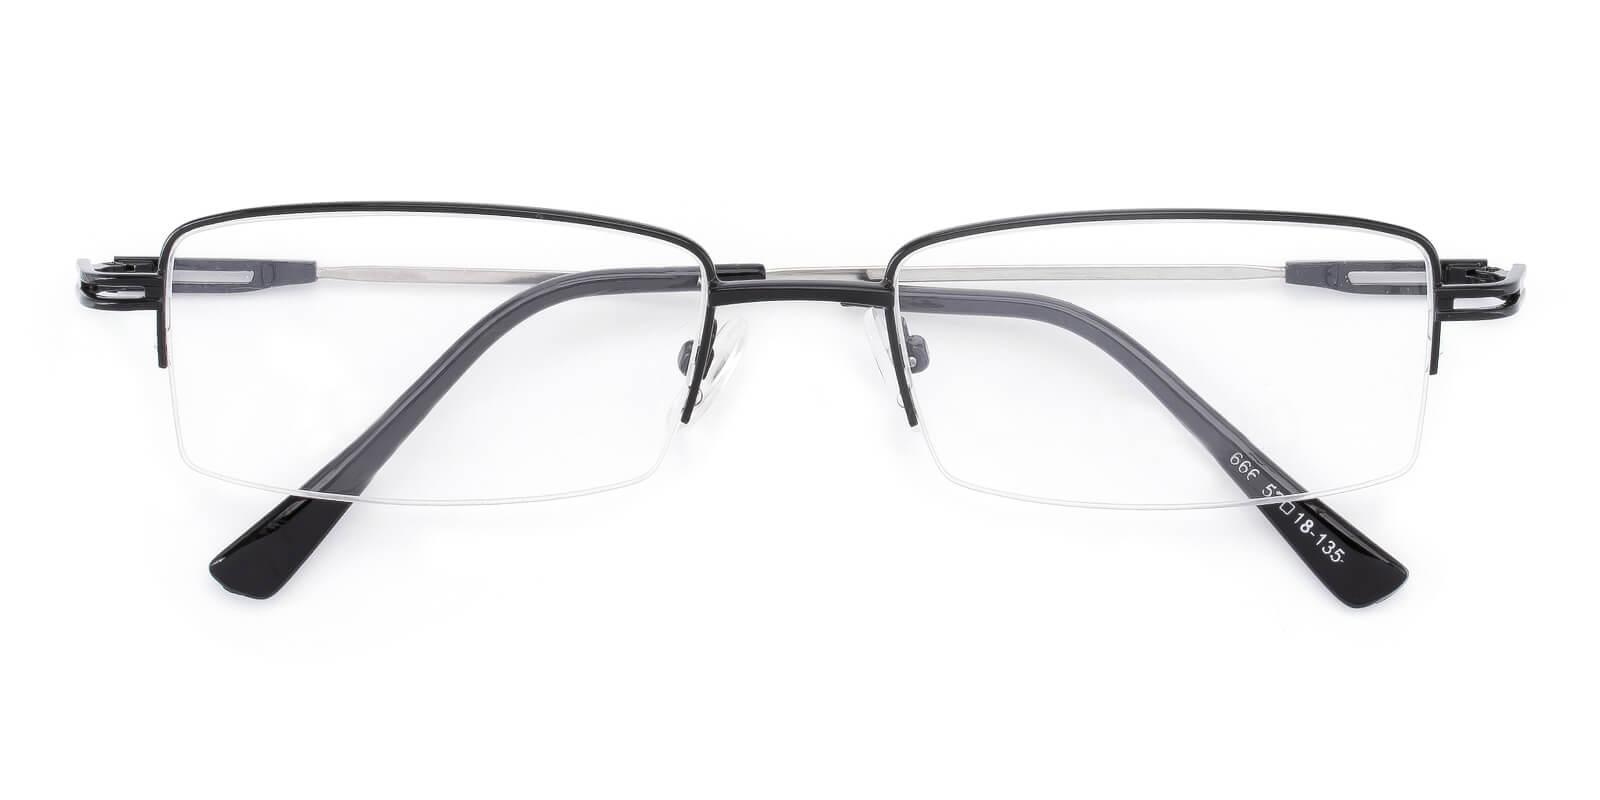 Studio-Black-Rectangle-Metal-Eyeglasses-detail